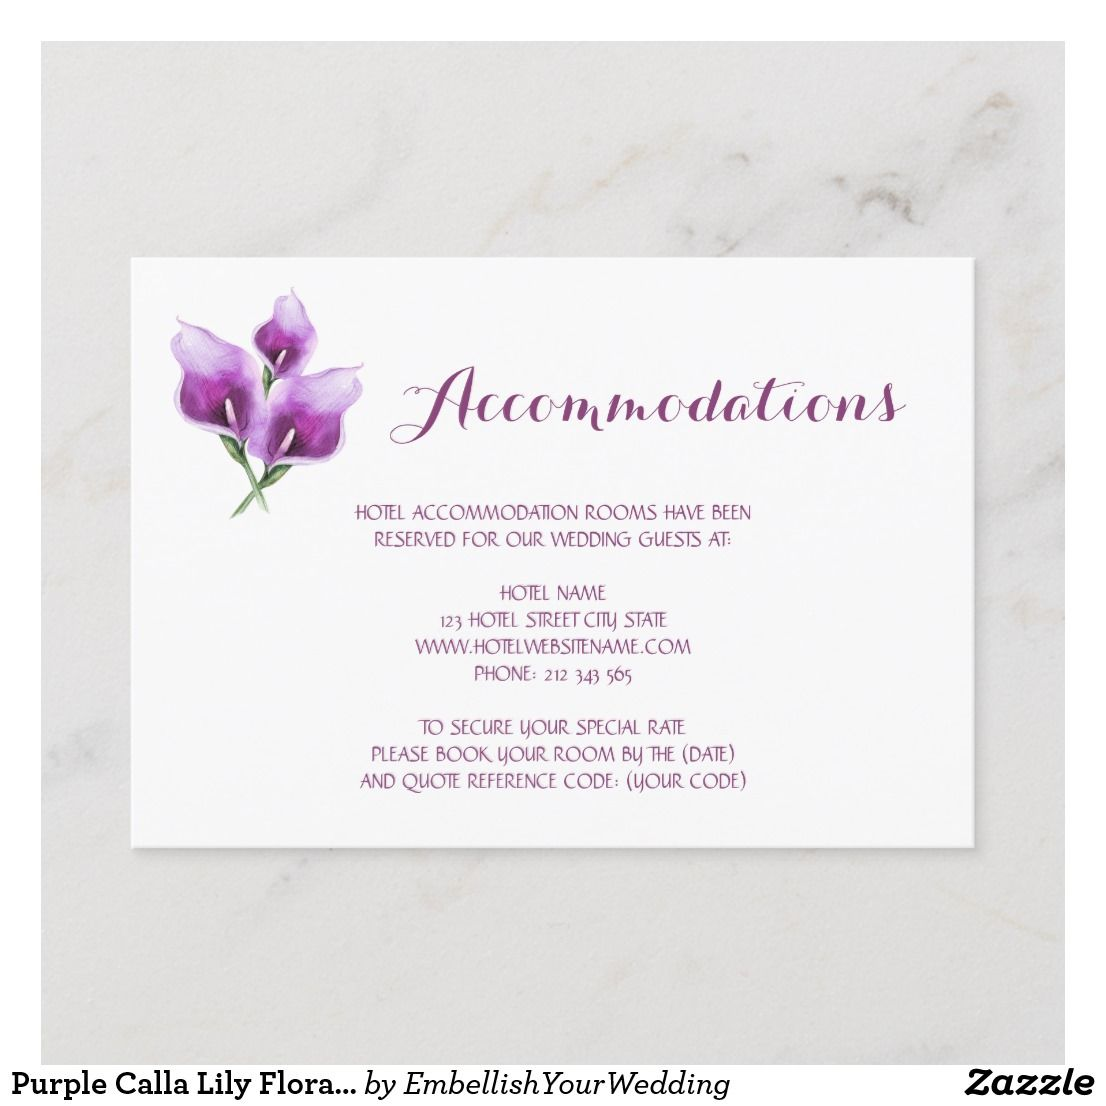 Purple Calla Lily Floral Wedding Accommodations Enclosure Card